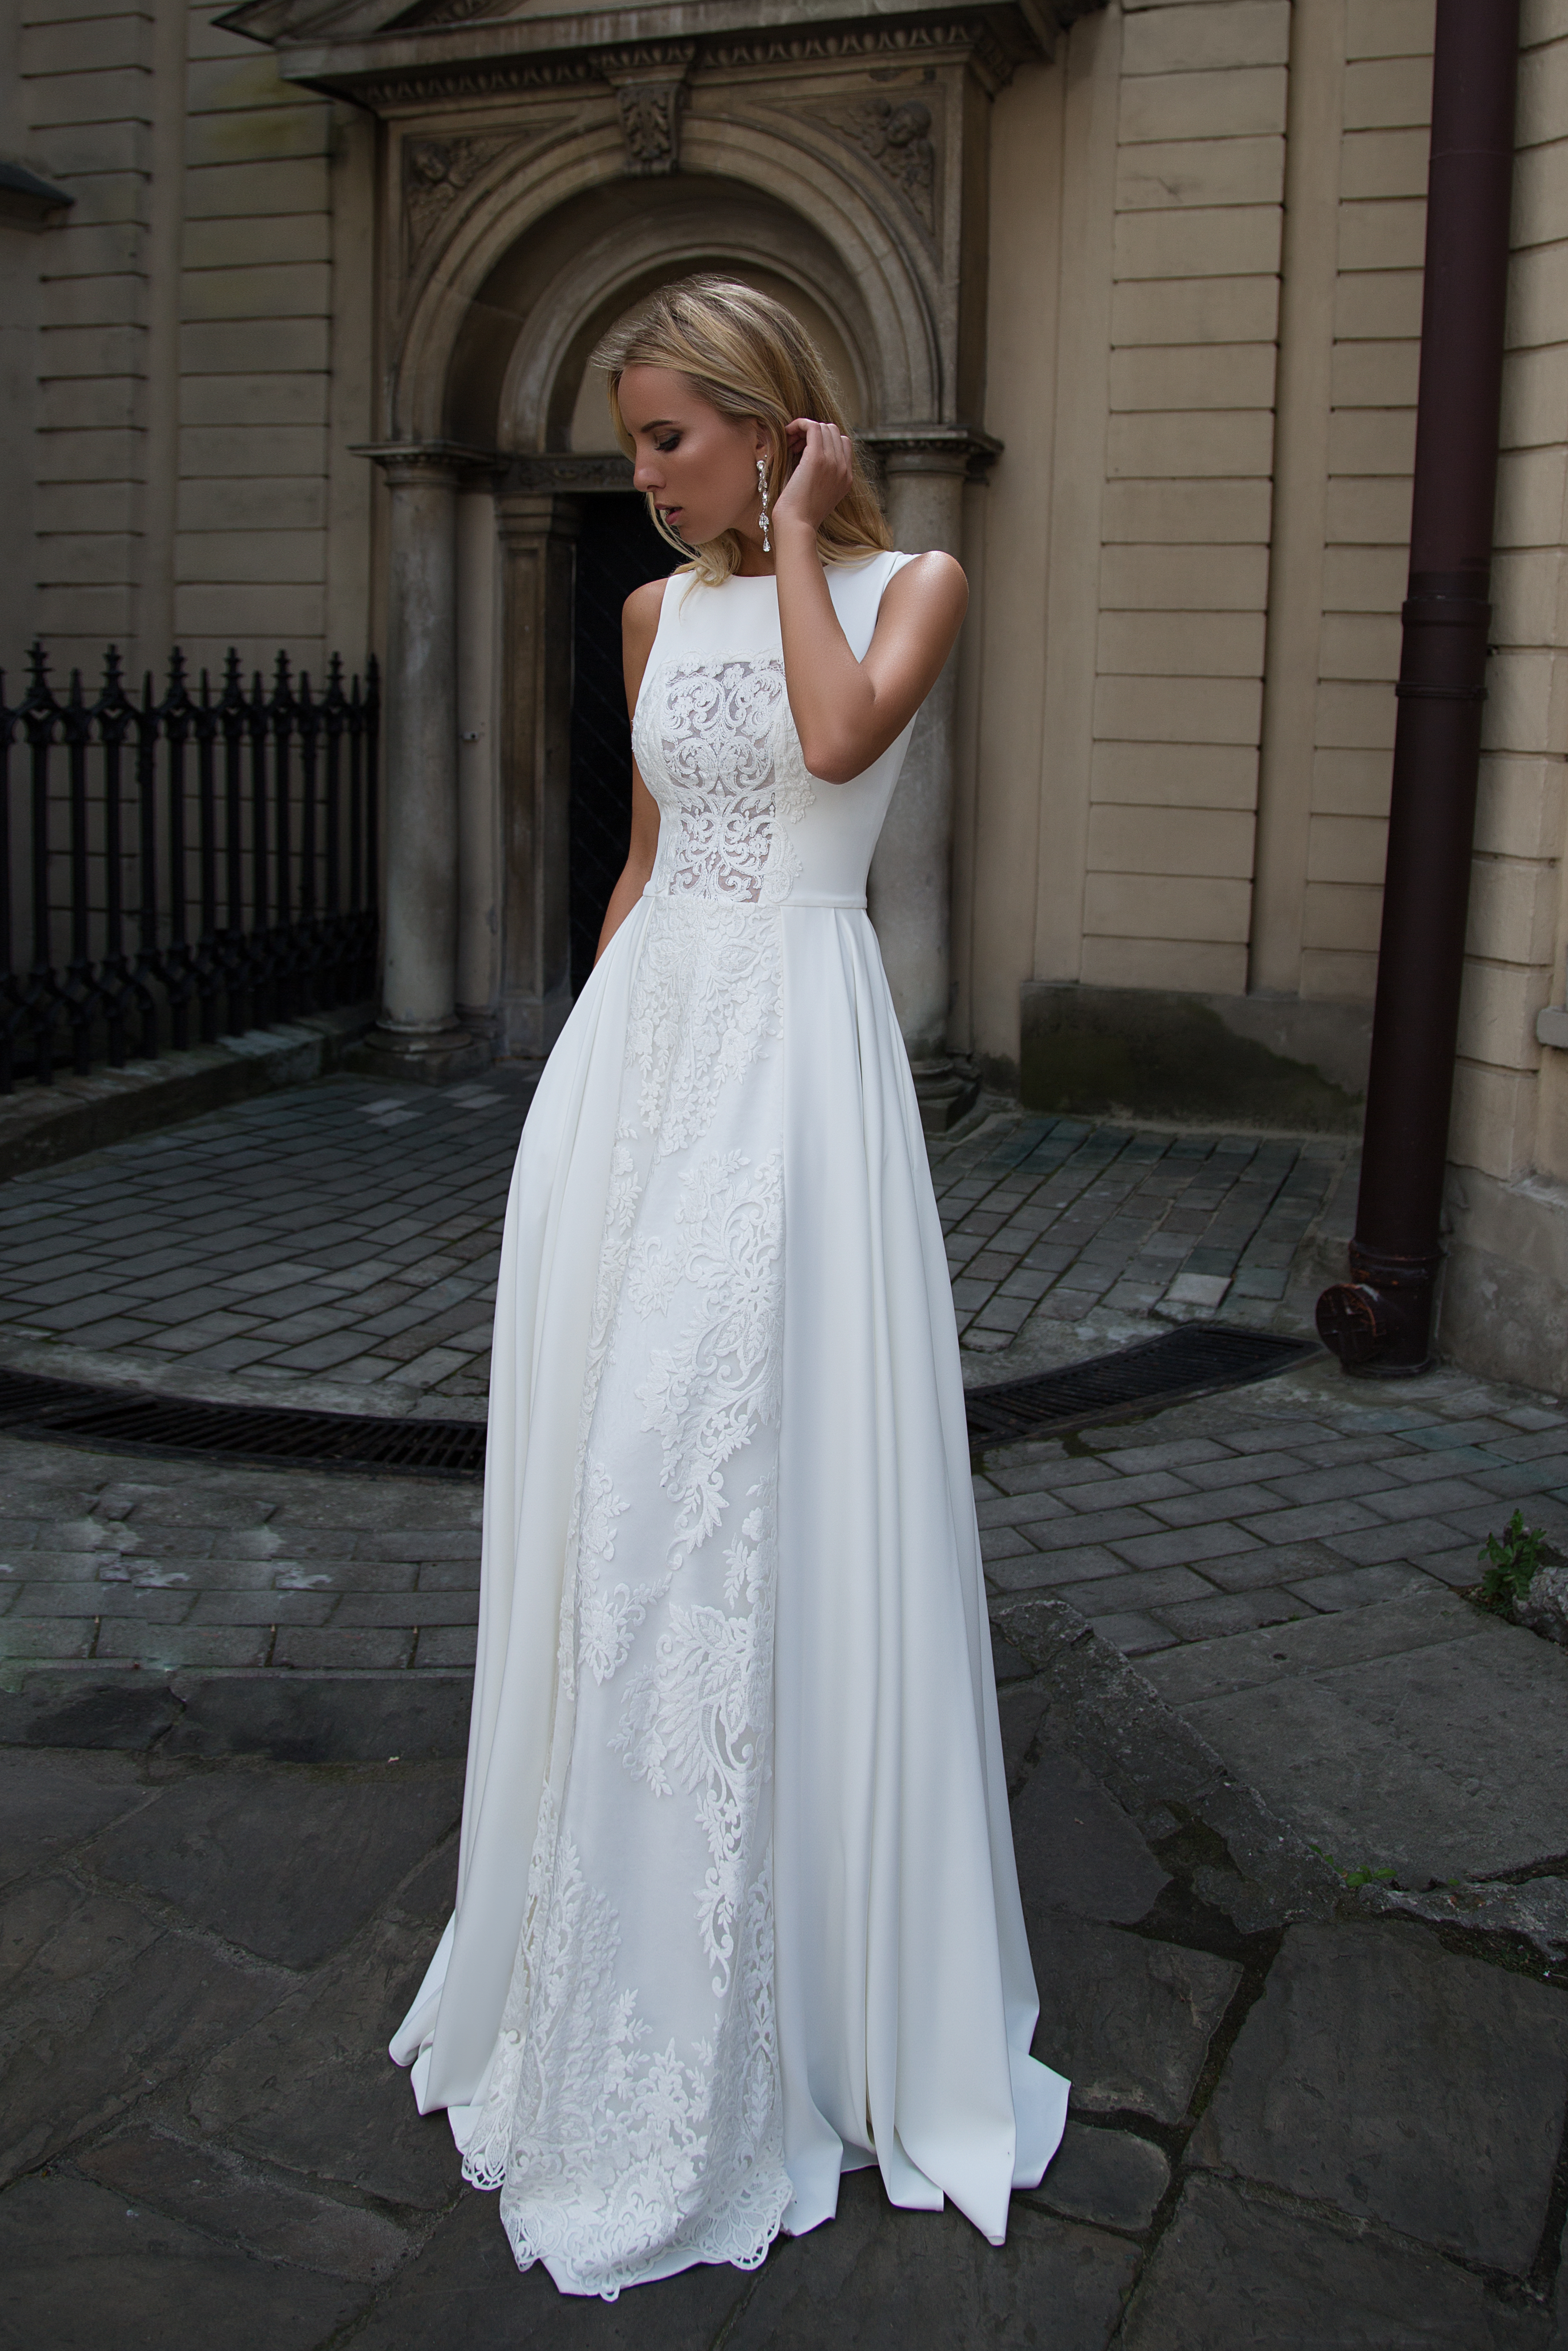 Wedding dresses Heaven Collection  Supreme Classic  Silhouette  A Line  Color  Ivory  Neckline  Scoop  Sleeves  Wide straps  Train  No train